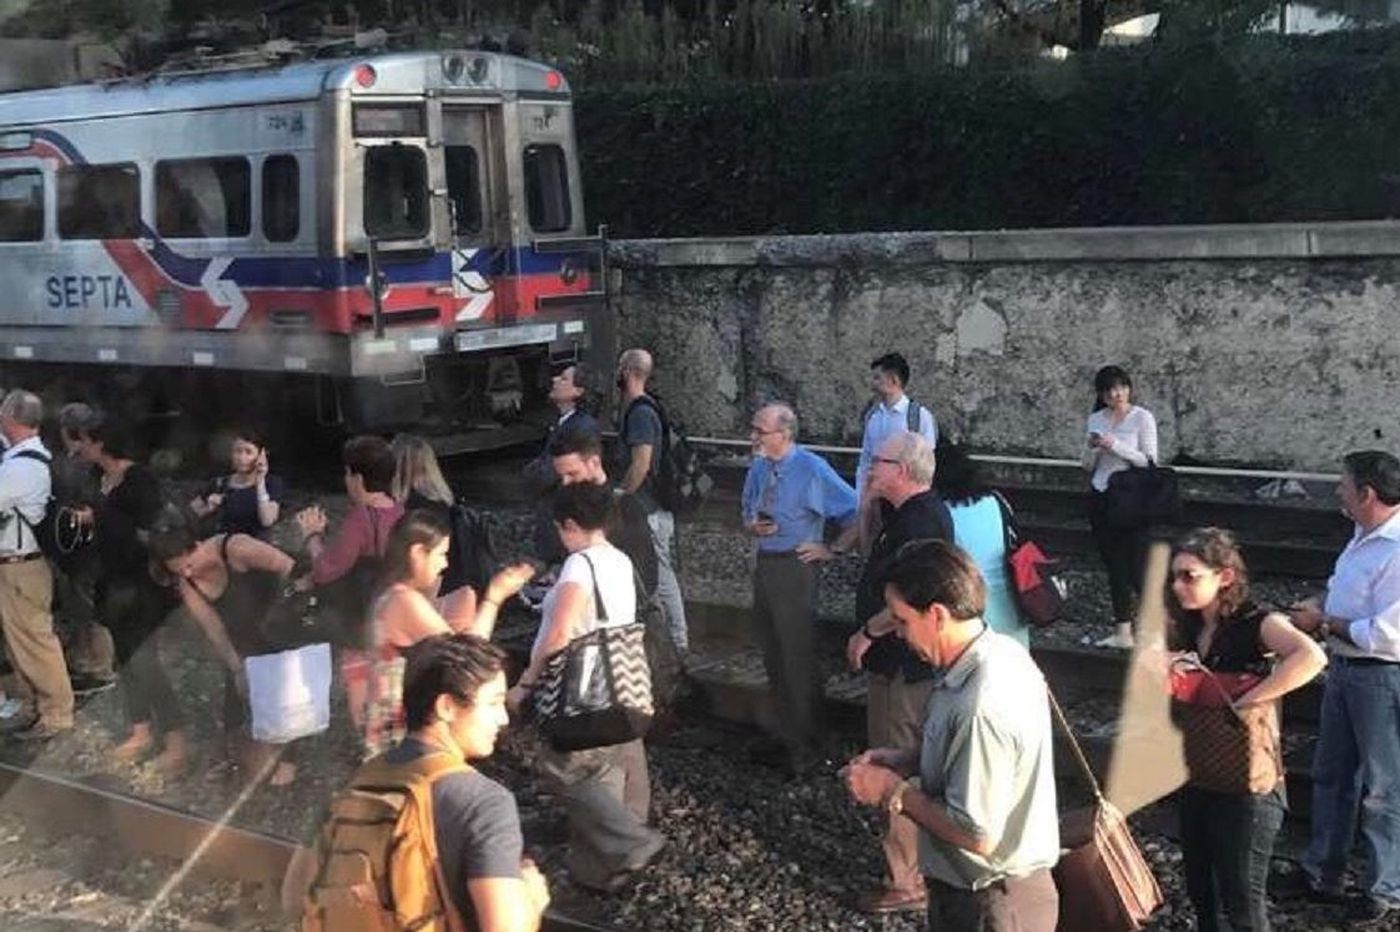 SEPTA Regional Rail halted in Center City, riders flee train because of false fire rumor